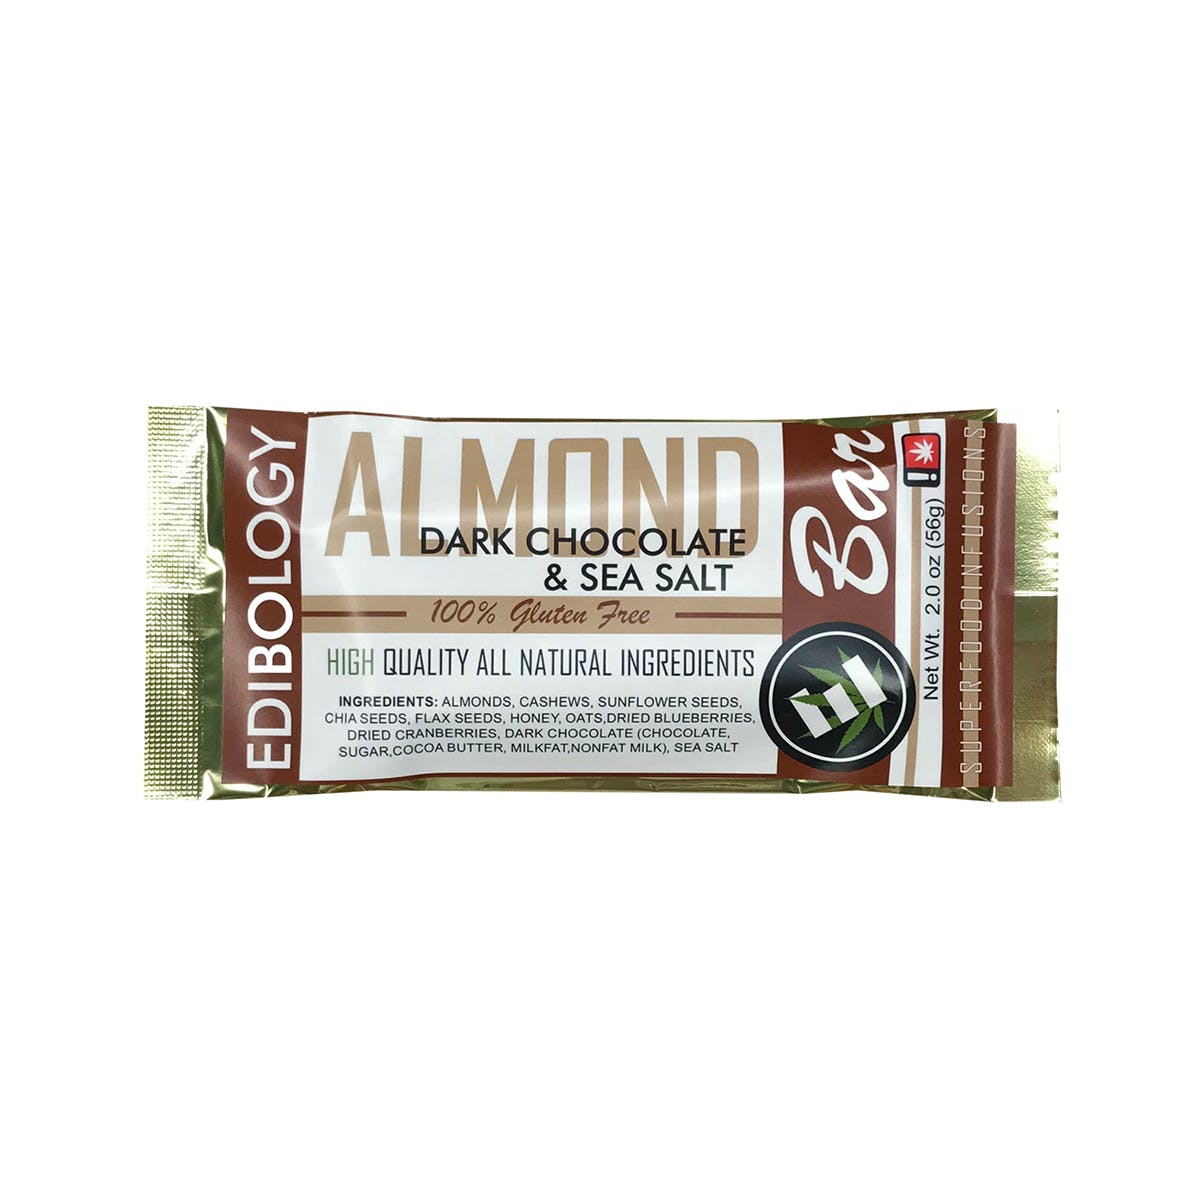 marijuana-dispensaries-caspers-cannabis-club-in-eugene-ebar-almond-dark-chocolate-a-sea-salt-15mg